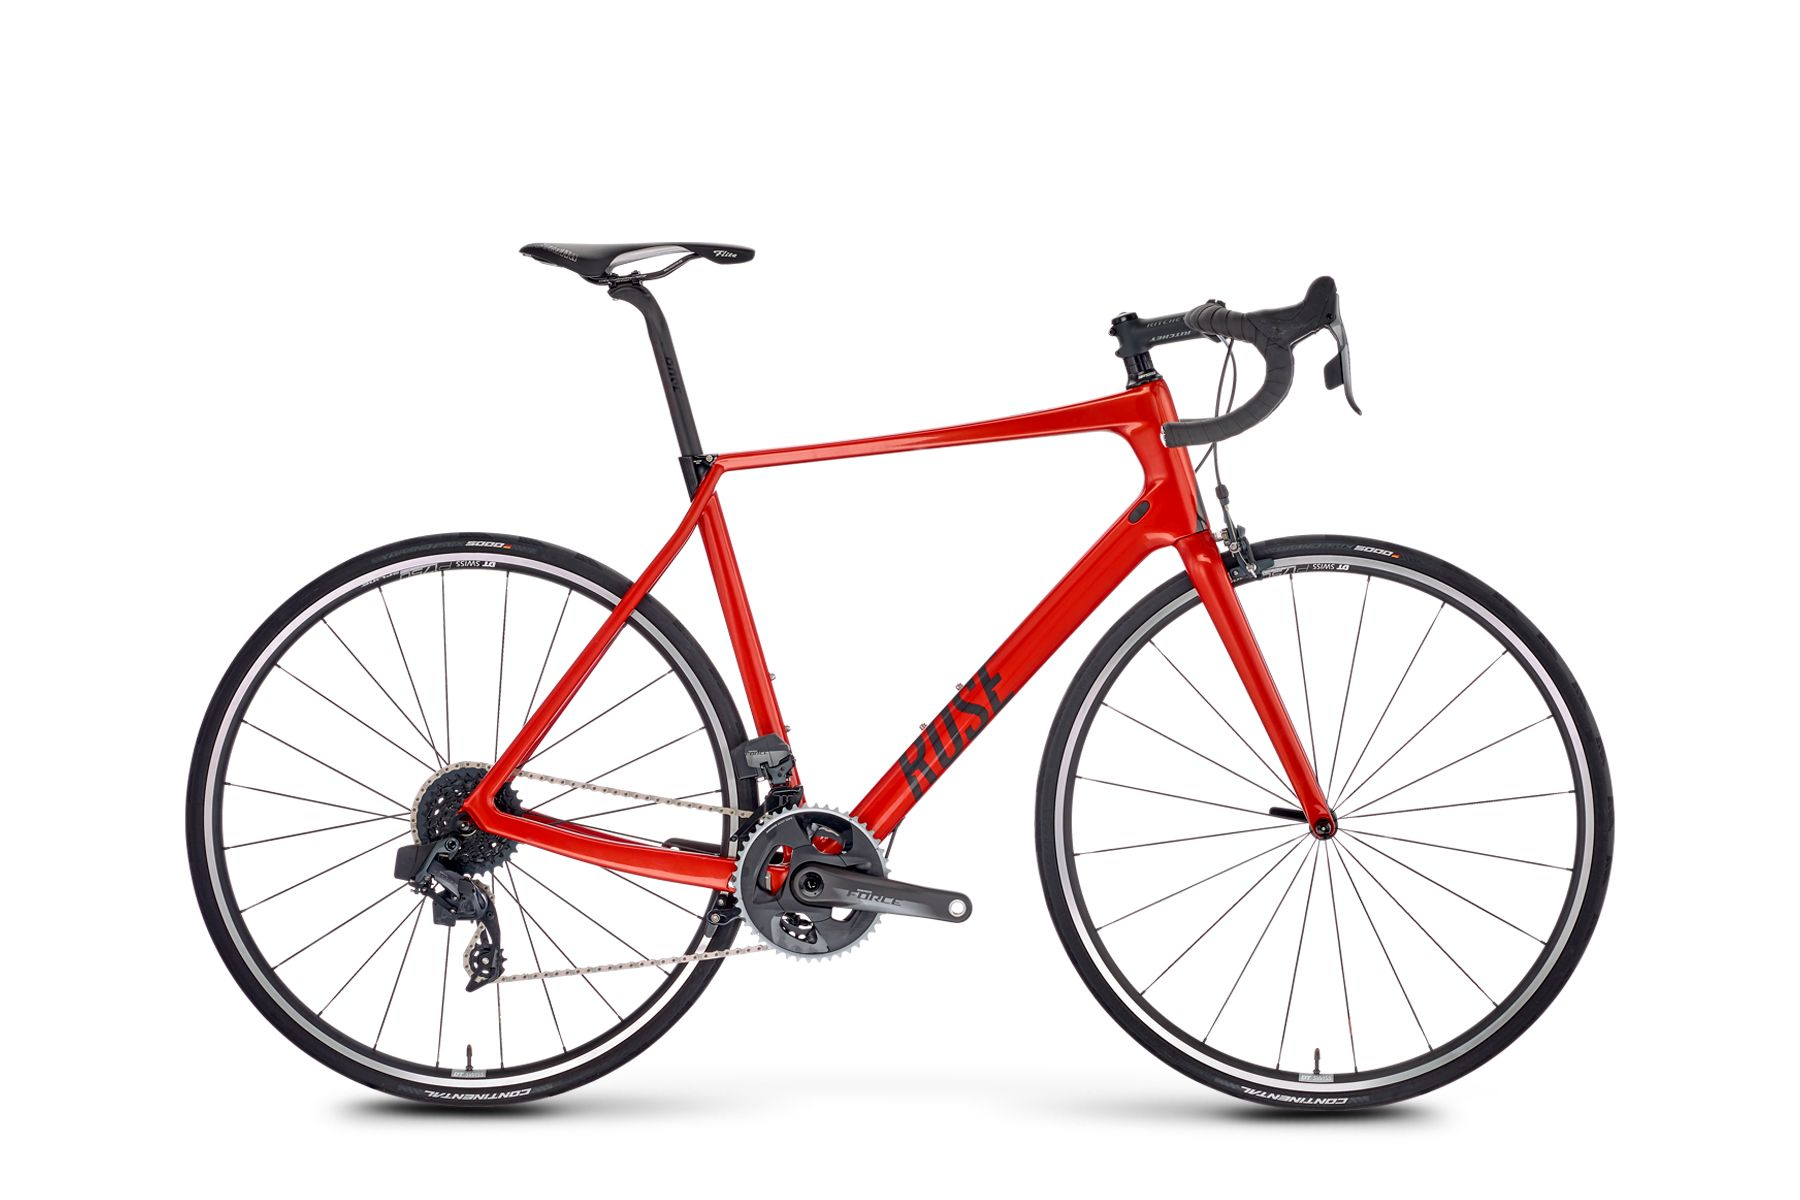 ROSE TEAM GF FOUR FORCE ETAP AXS Showroom Bike Size: 57cm